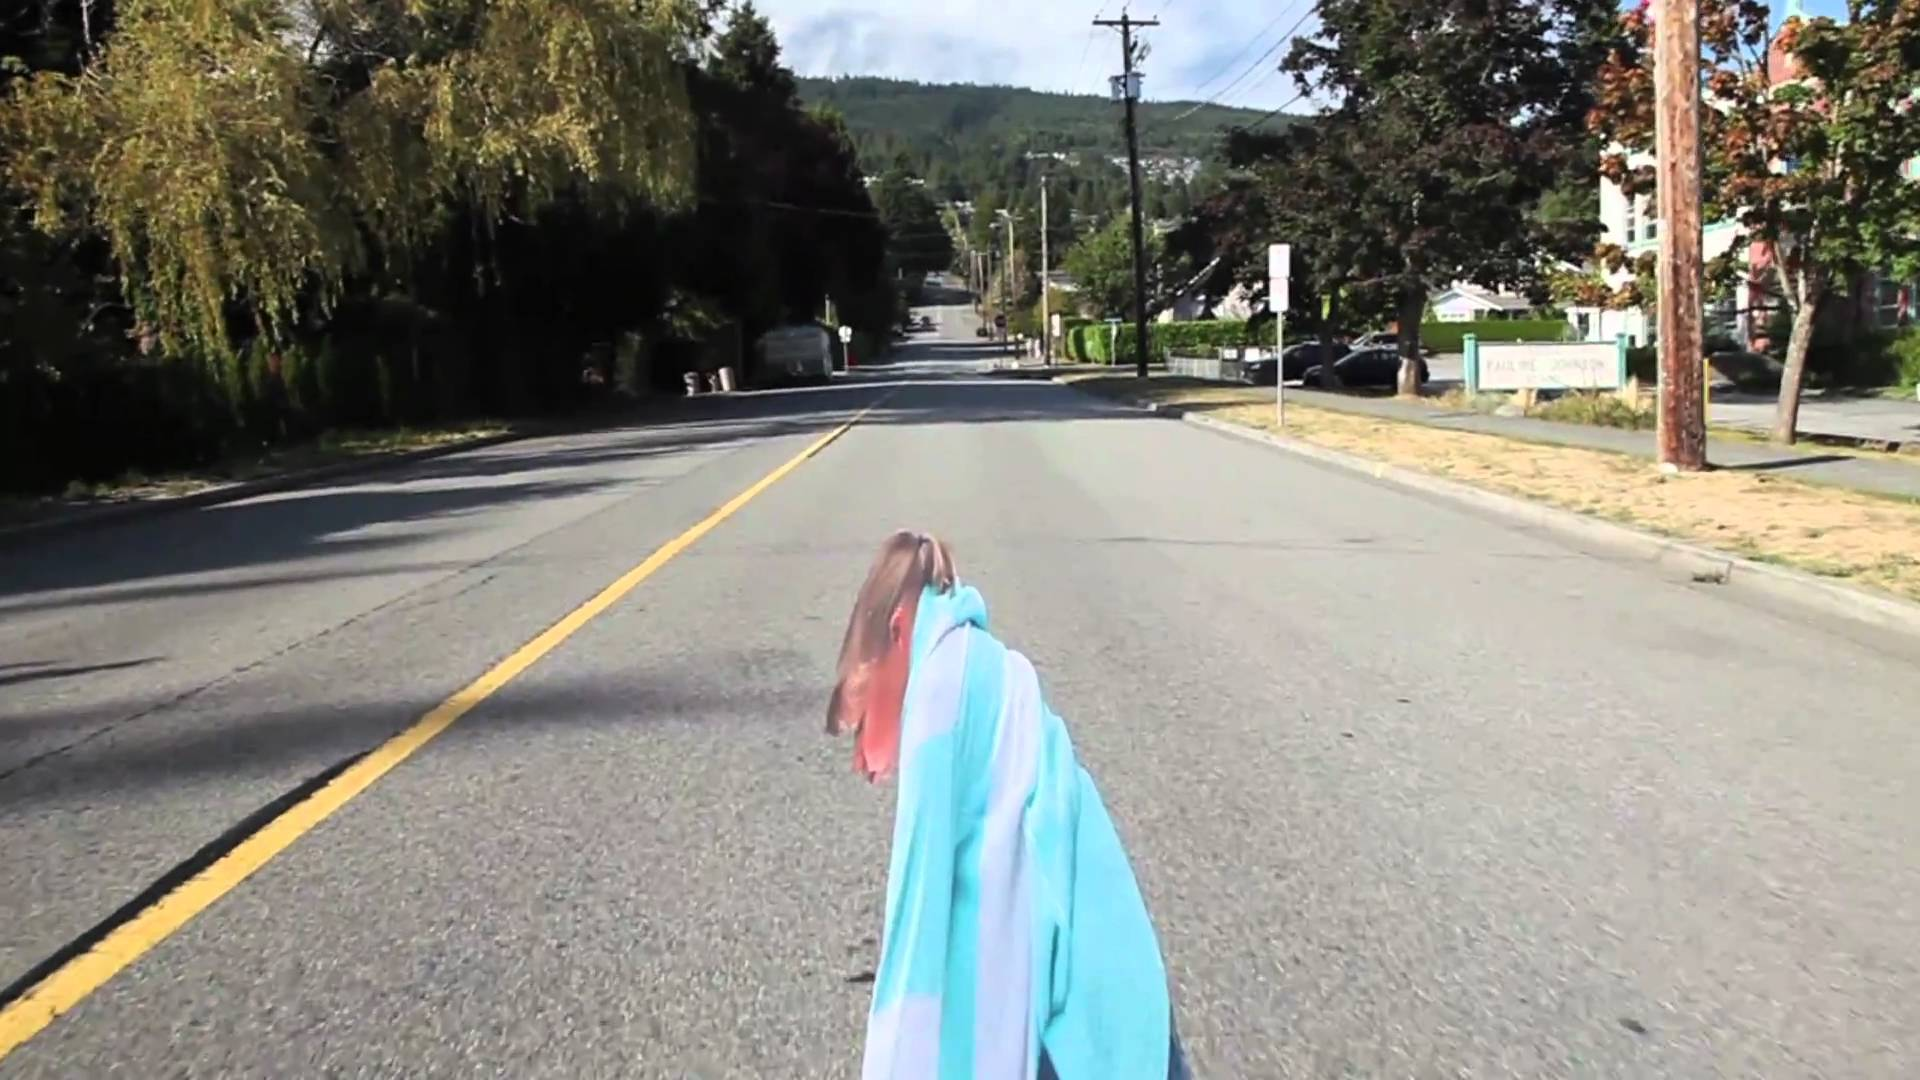 3D Optical Illusion Painted On Street To Make Drivers Slow ...